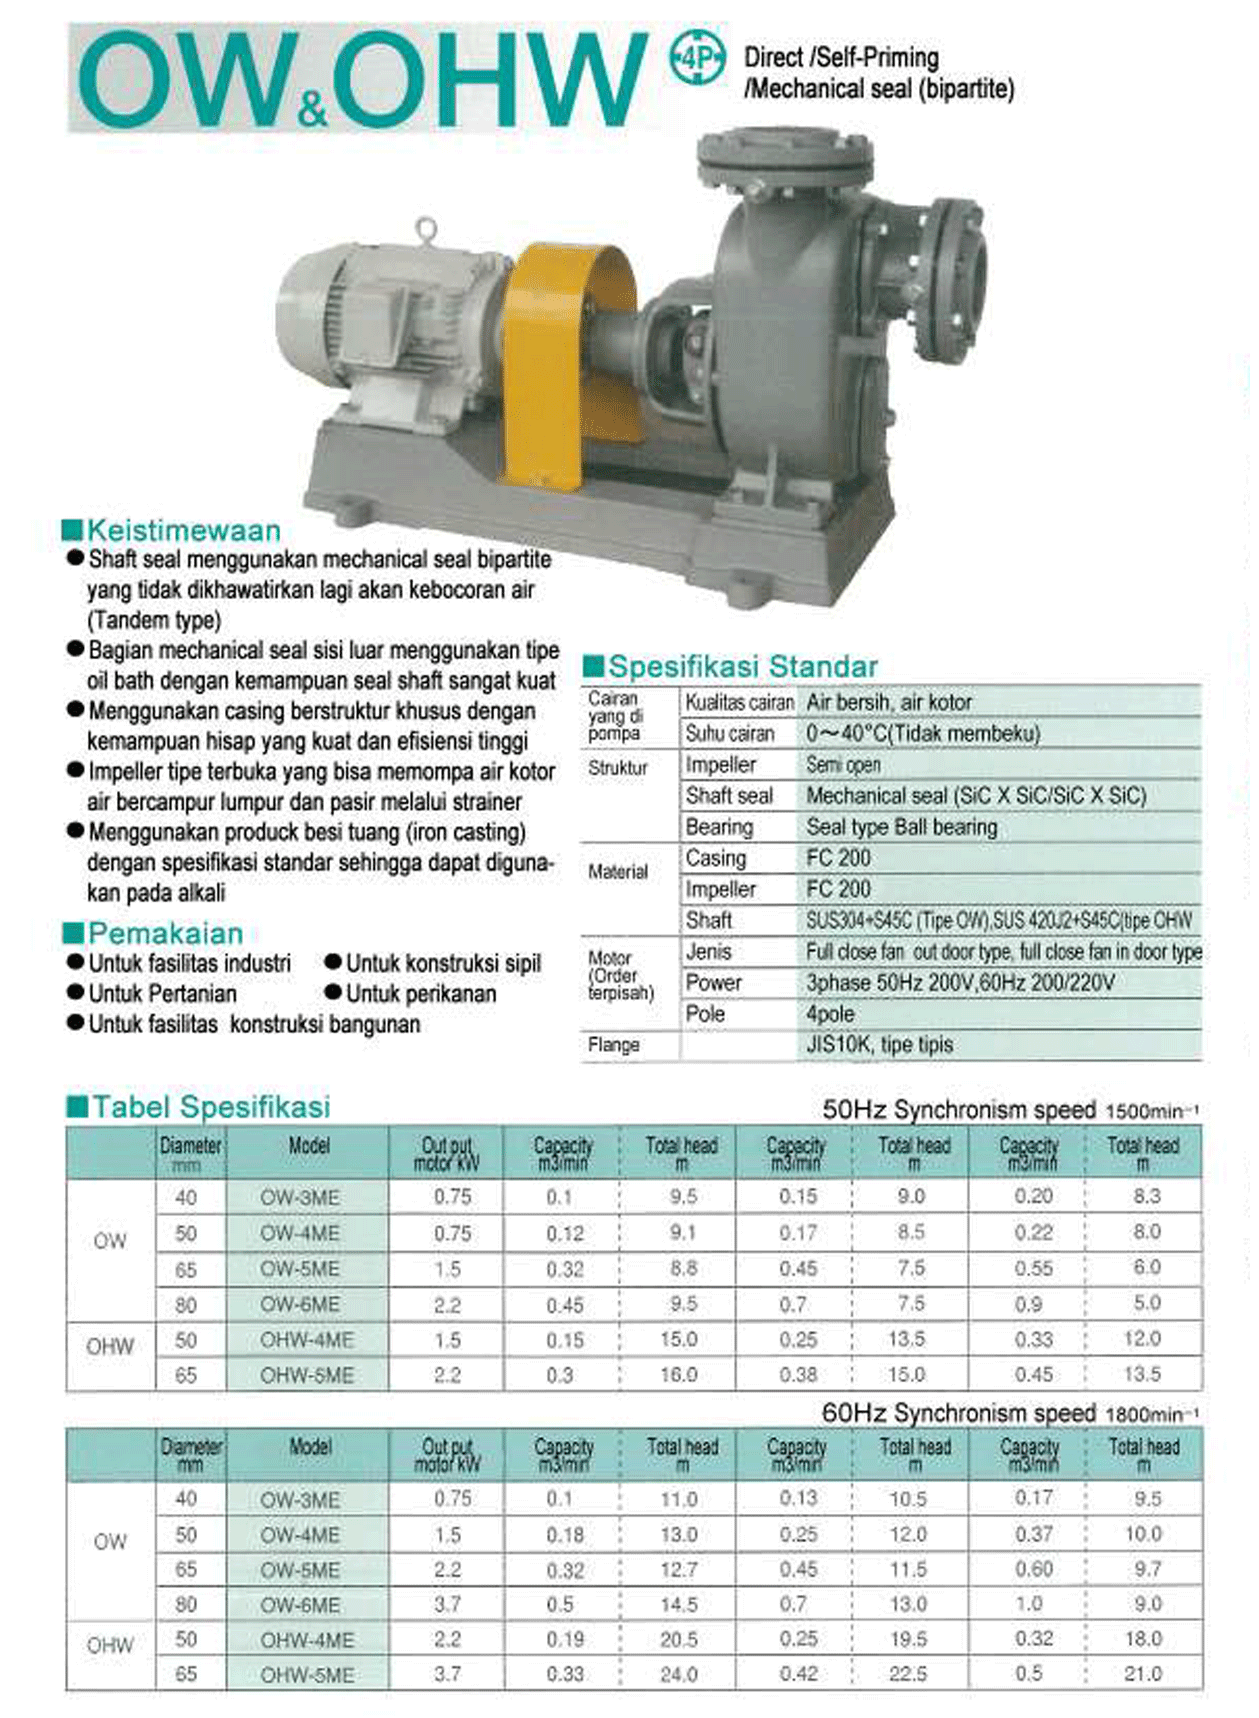 On-Land Pump OW&OHW